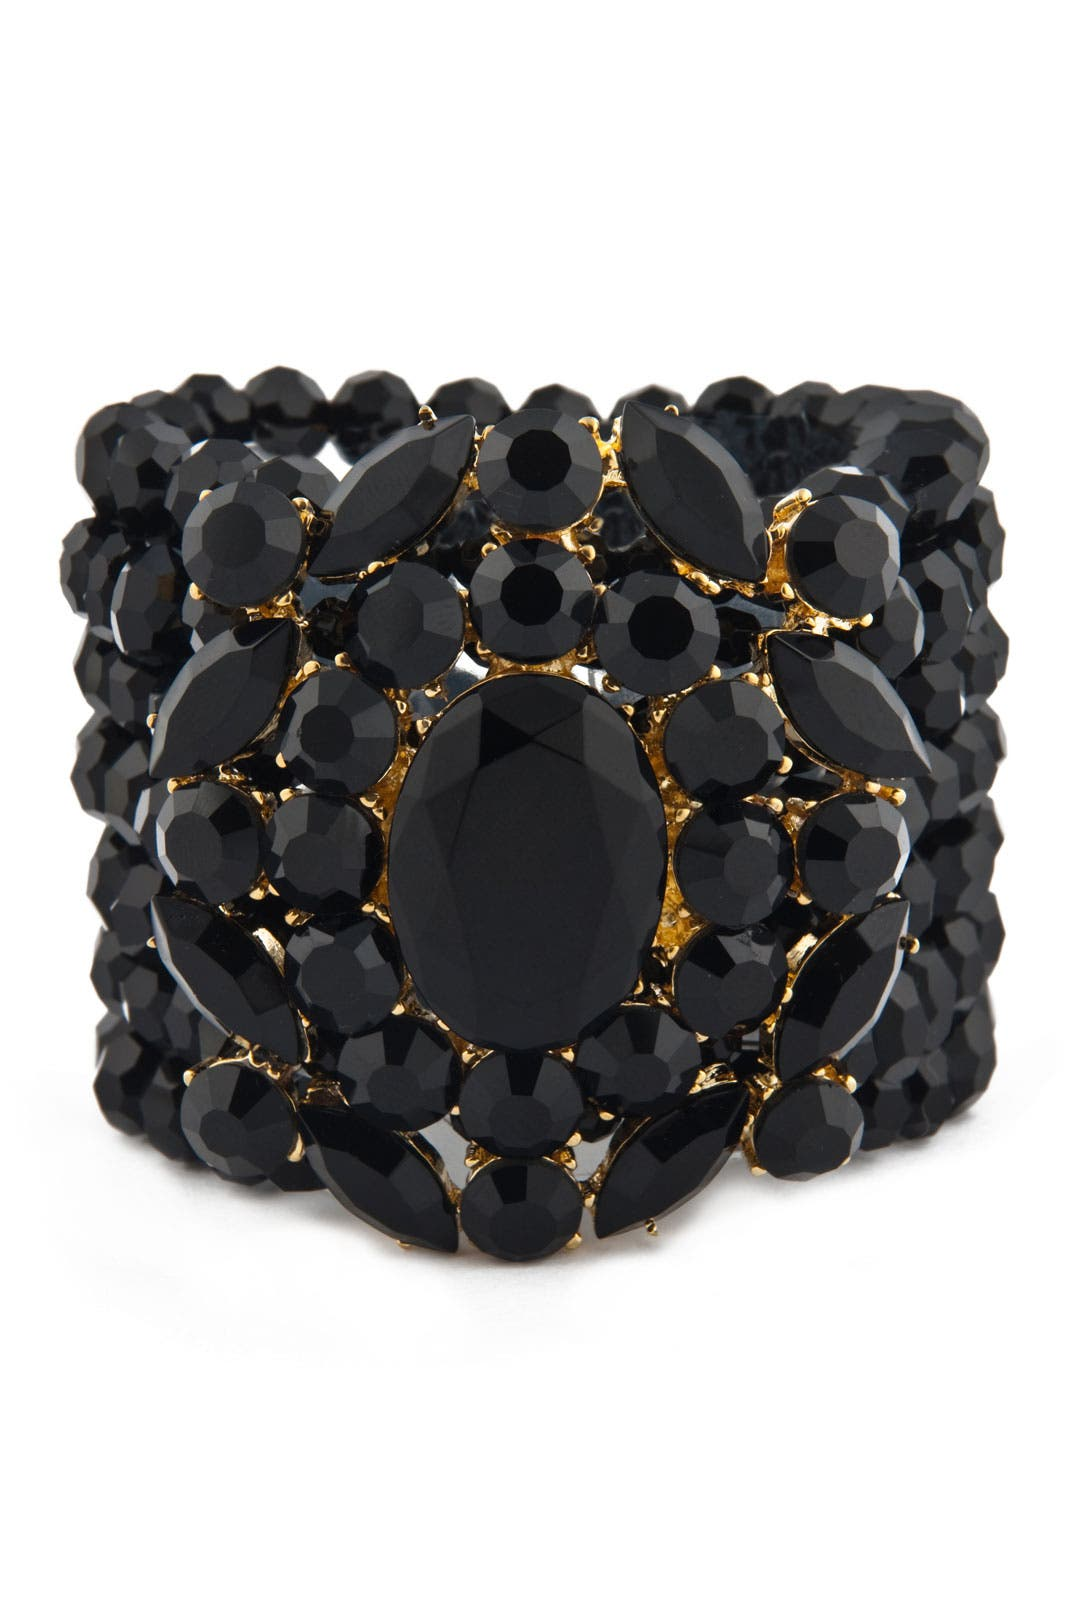 Shattered Pieces Stretch Bracelet by Badgley Mischka Jewelry